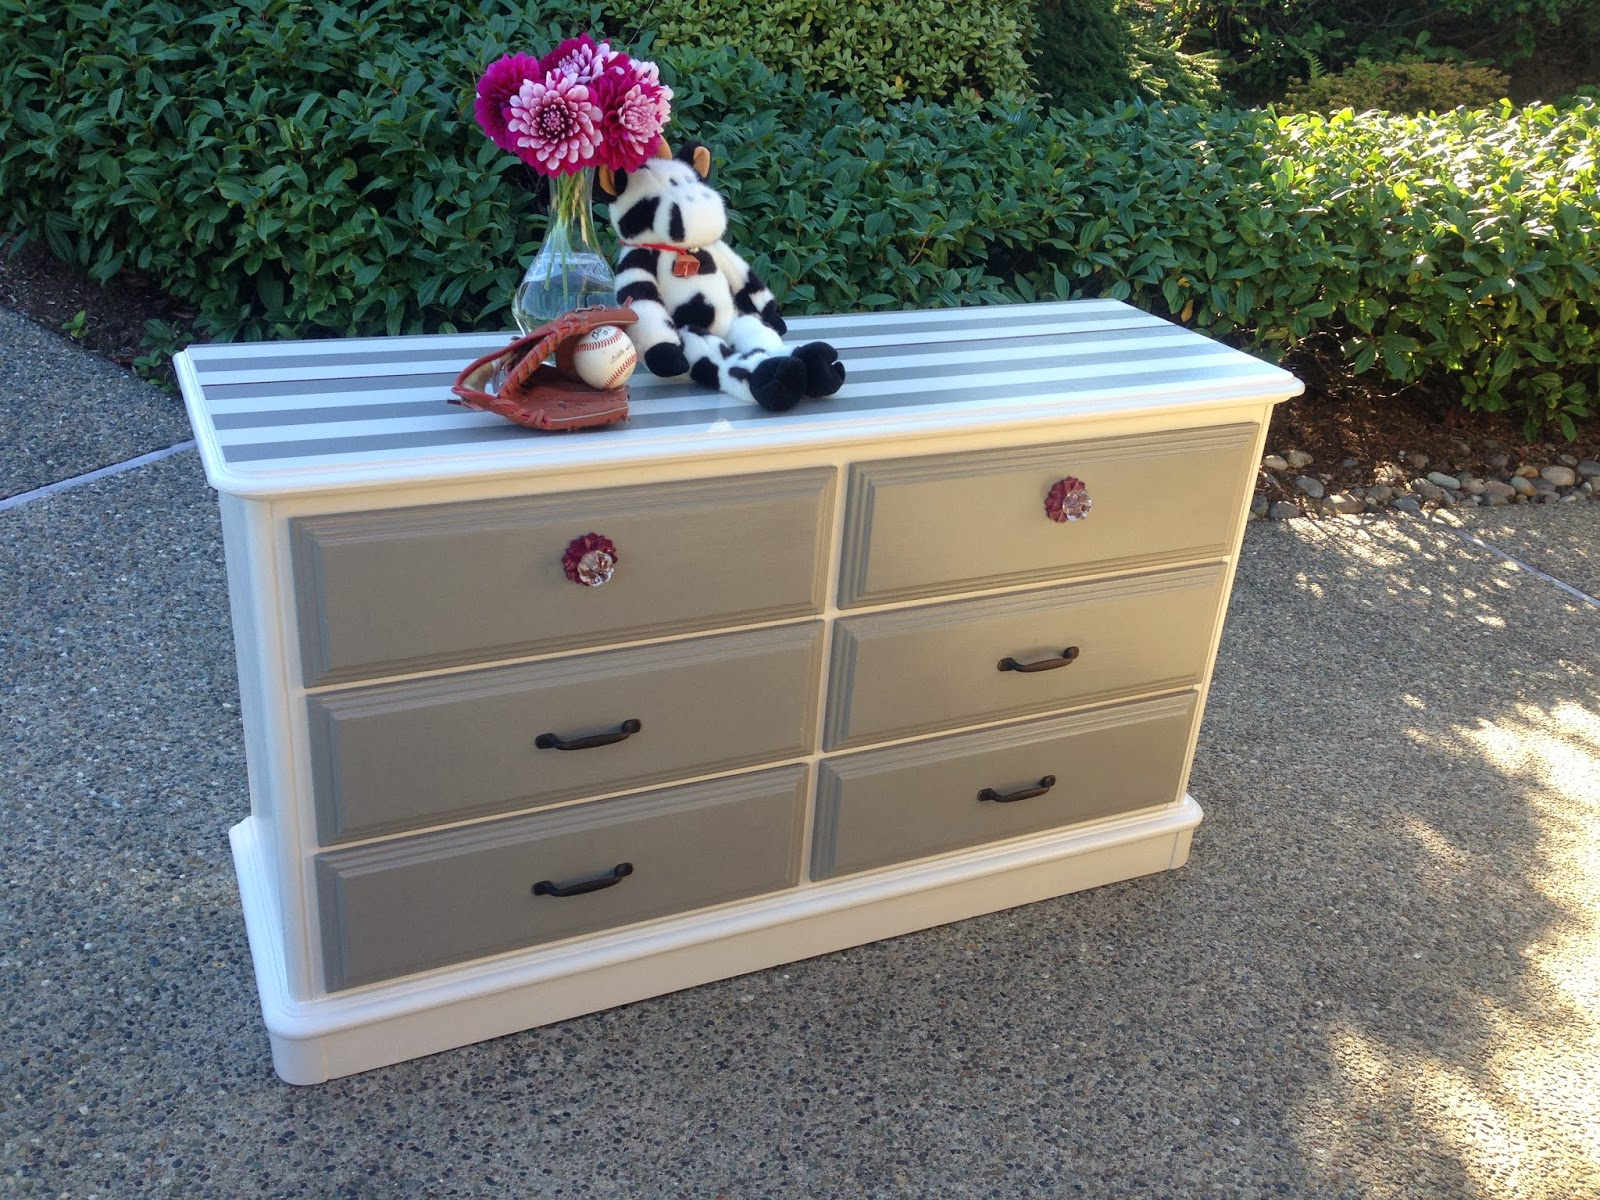 Fantastic Sophisticated Junk Pile: Off-White and Gray Striped Dresser with  DD96